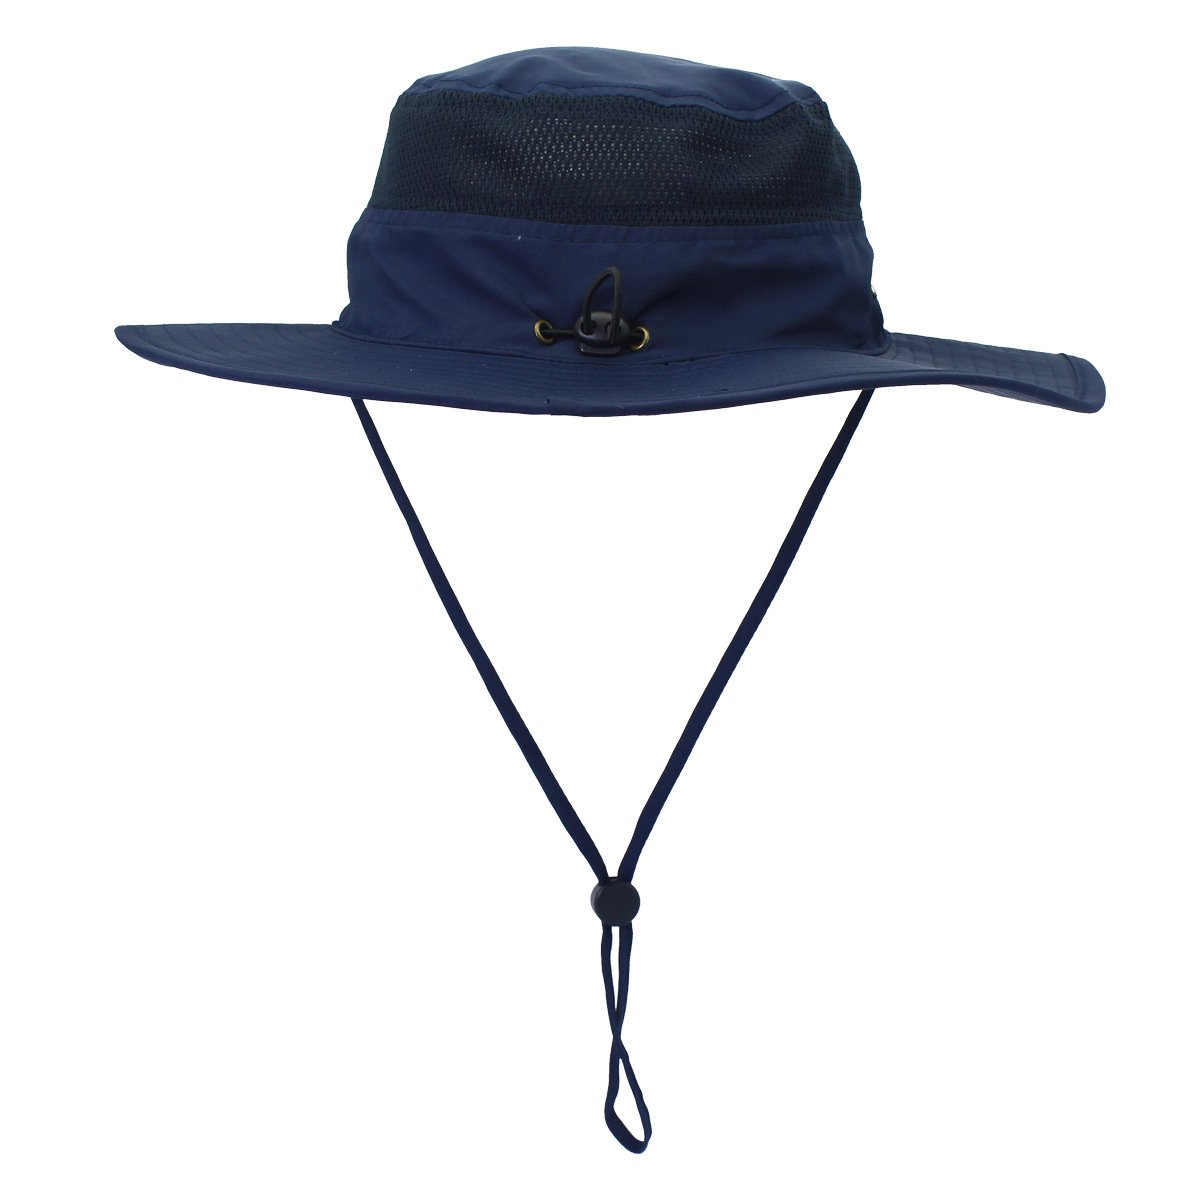 Peicees Boonie Hat for Men Women UV Protection Sun Hat Fishing Hat Unisex Wide Bucket Hats for Hiking Travelling Camping Fishing